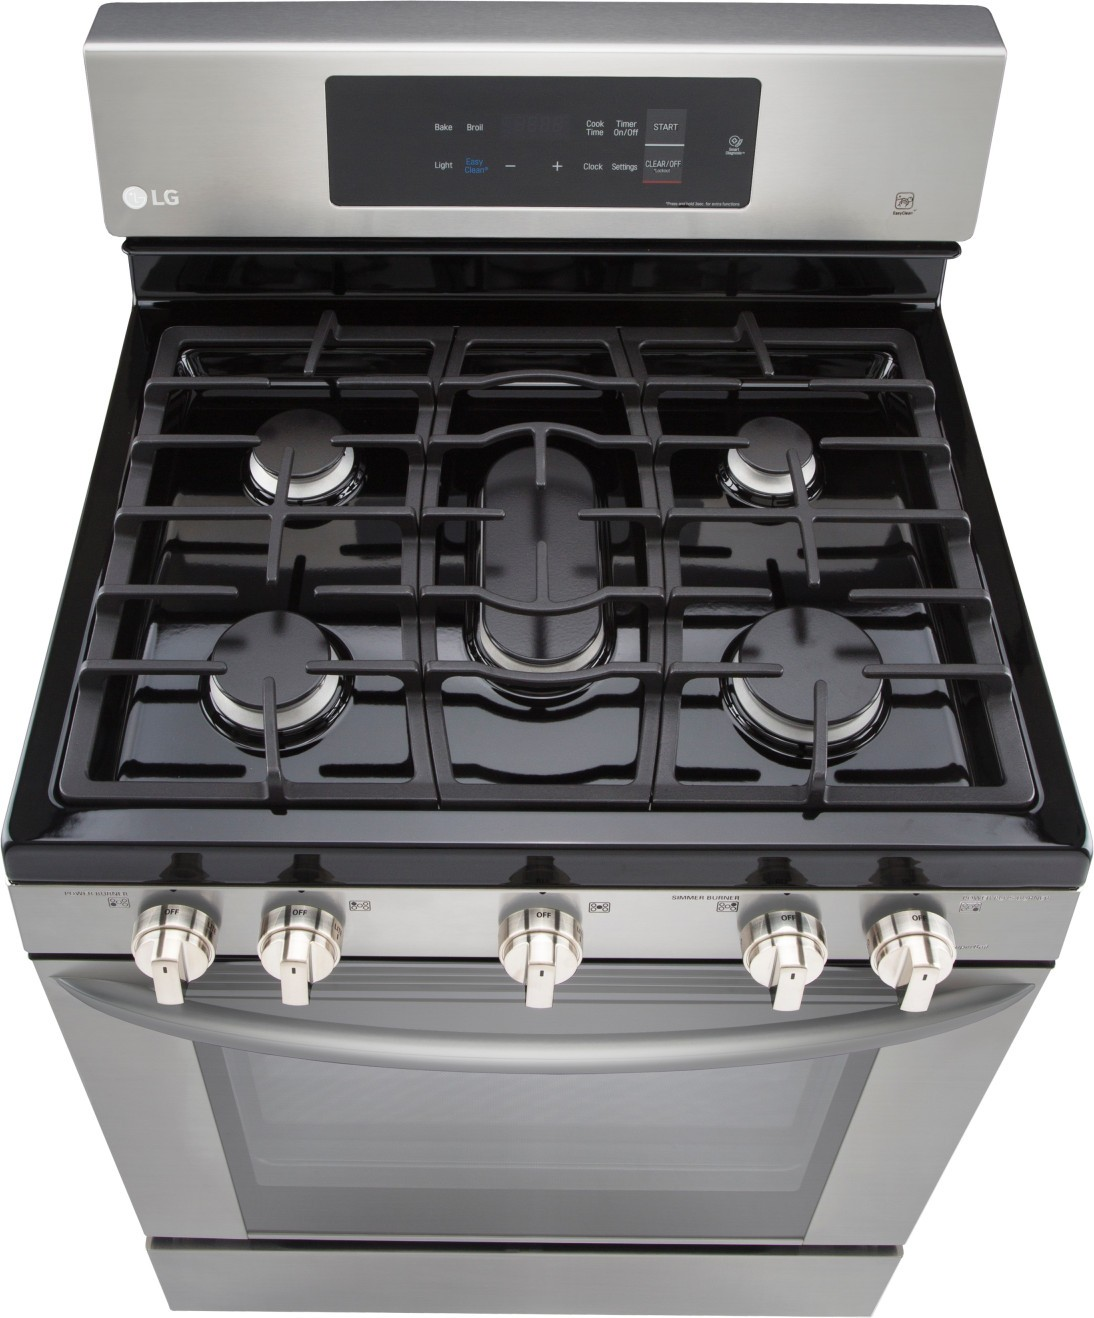 Lrg3061st Lg 30 Quot Gas Range 5 Sealed Burners Stainless